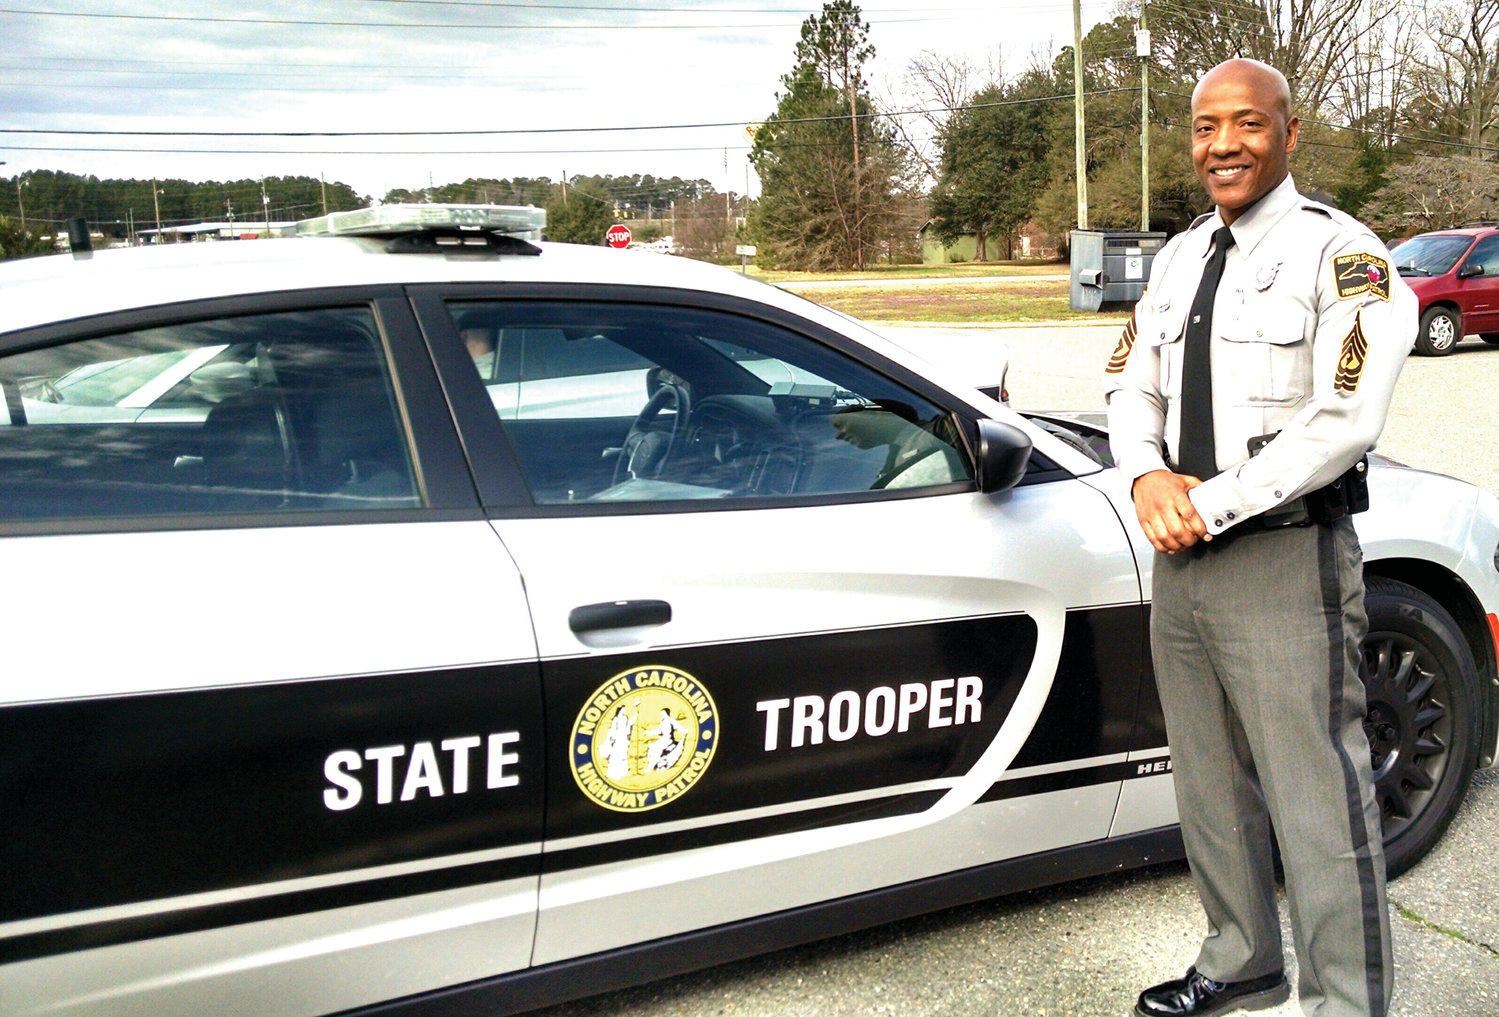 First Sergeant Doug Bowens is featured in this photo by his cruiser. He is Wayne County's new Highway Patrol first sergeant. He replaces First Sergeant John Bobbitt, who was transferred to Fayetteville. Sgt. Bowens, a 19-year veteran with the patrol, relocates here from Granville County.